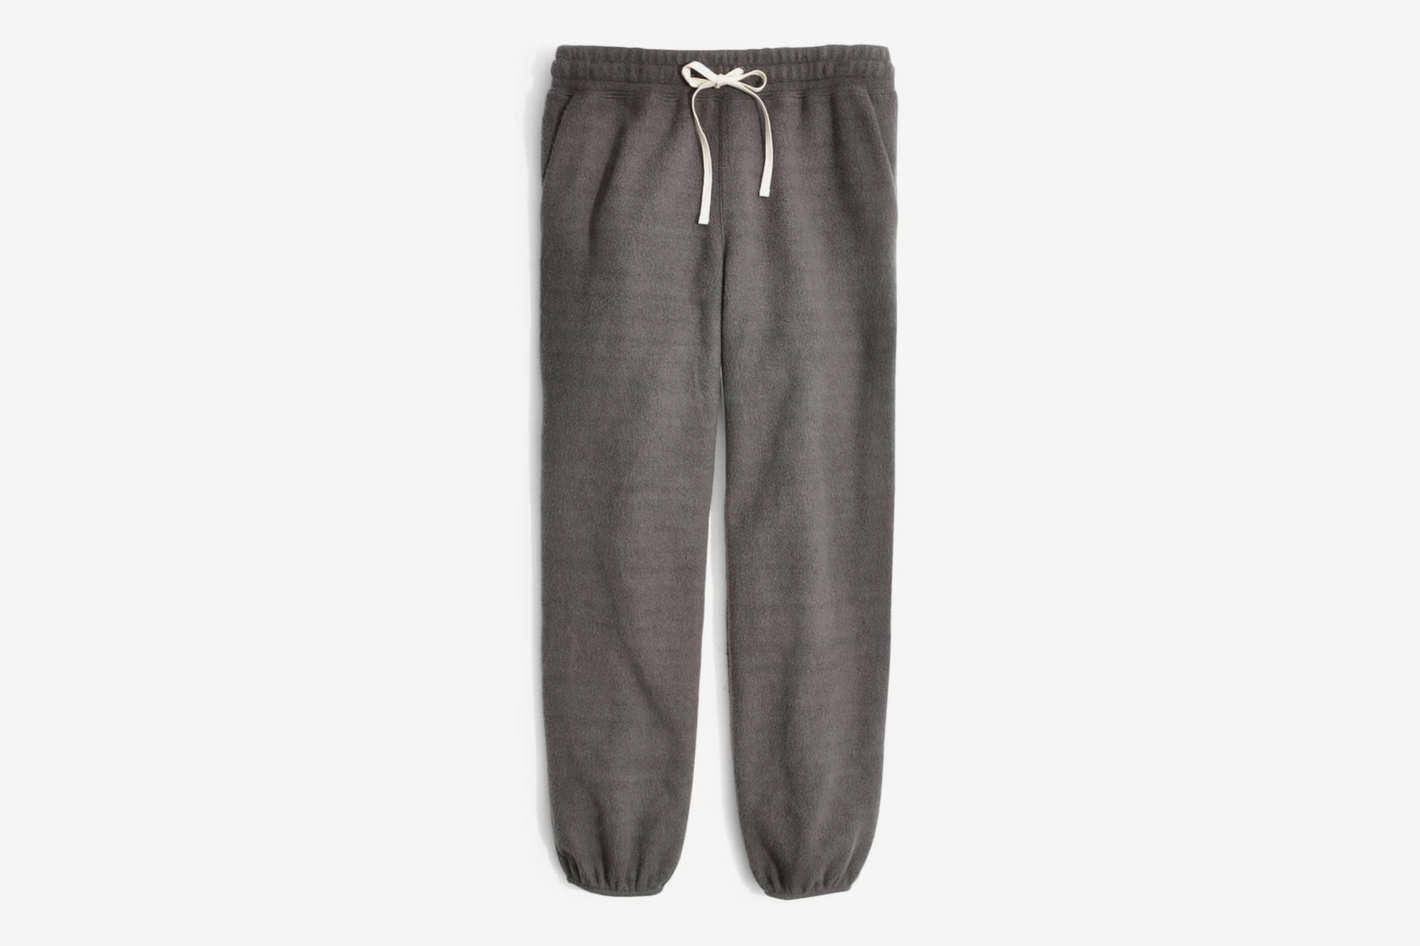 Madewell Fleece Pajama Sweatpants